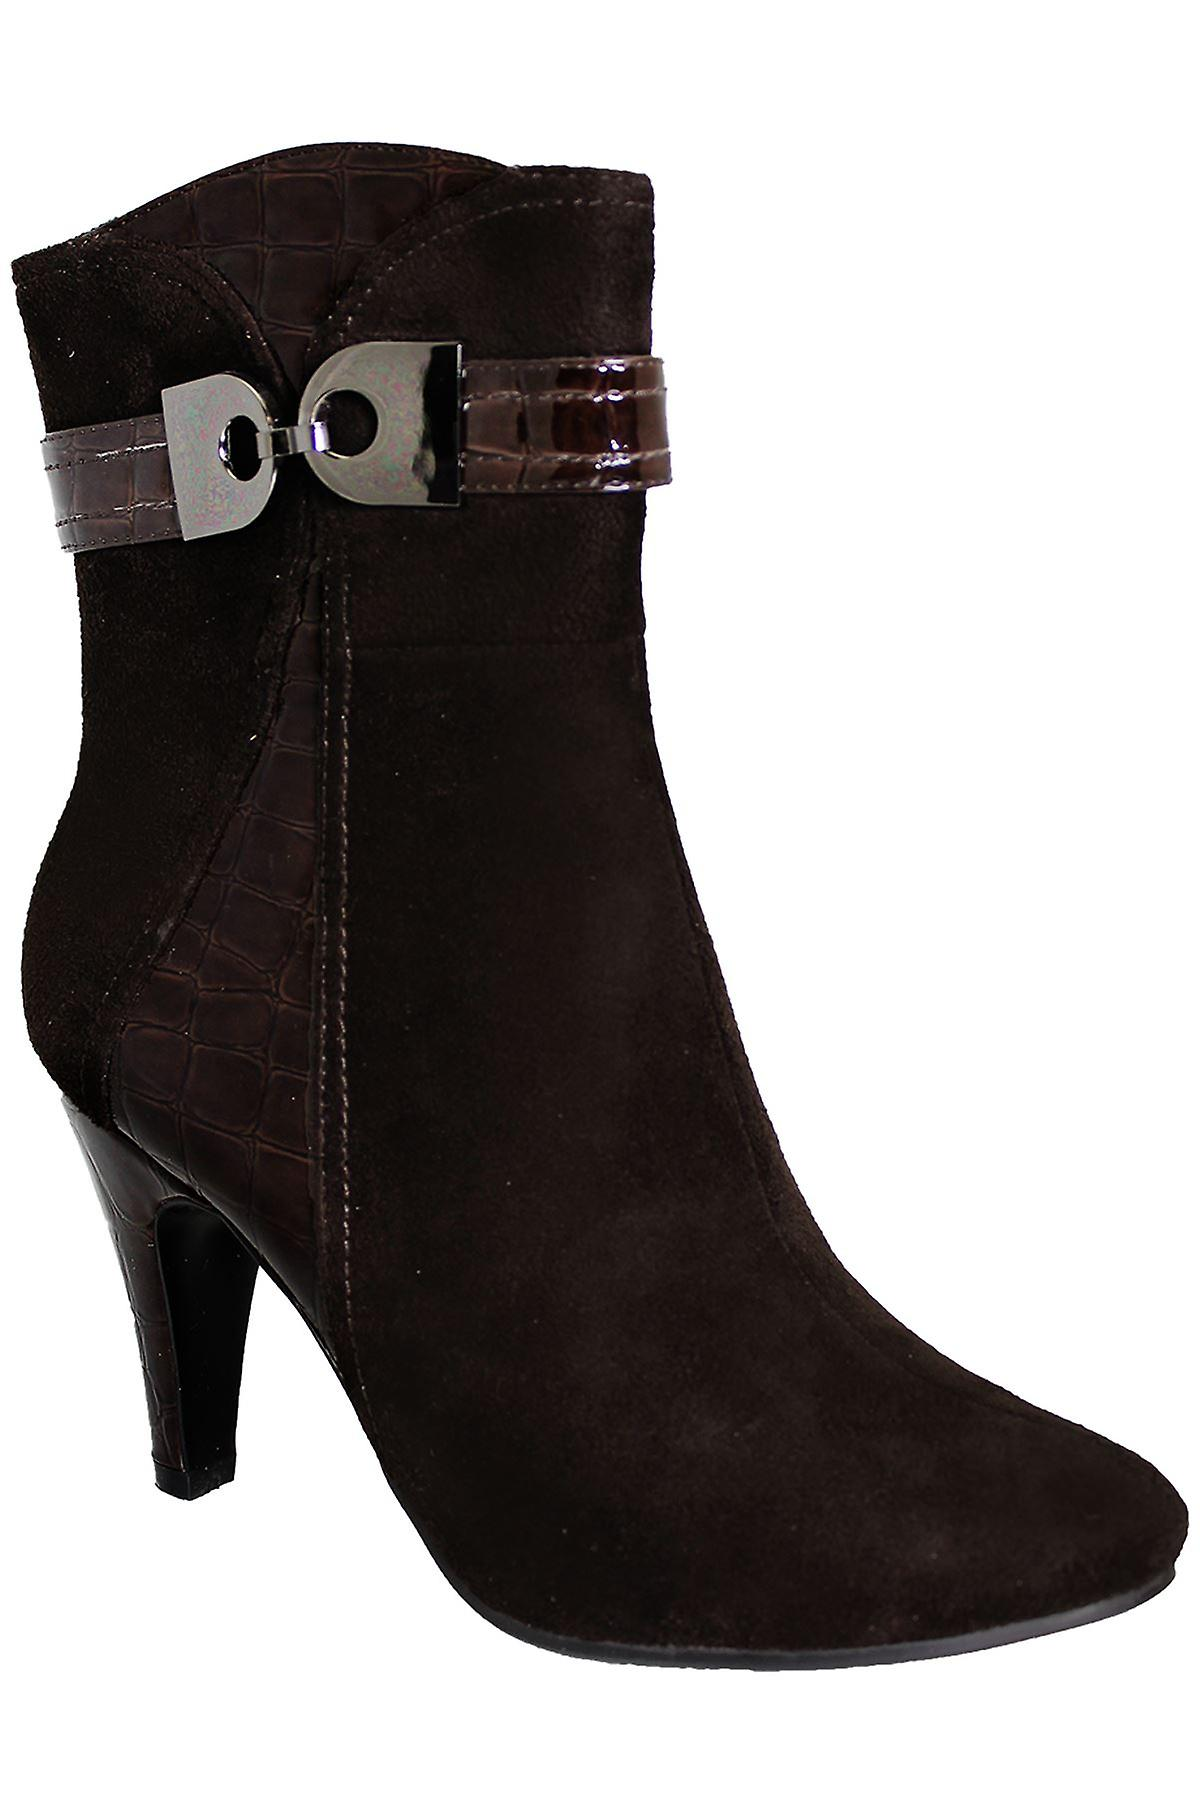 Ladies Patent Contrast Warm Suede Buckle Accent Women's Ankle Heel Boots